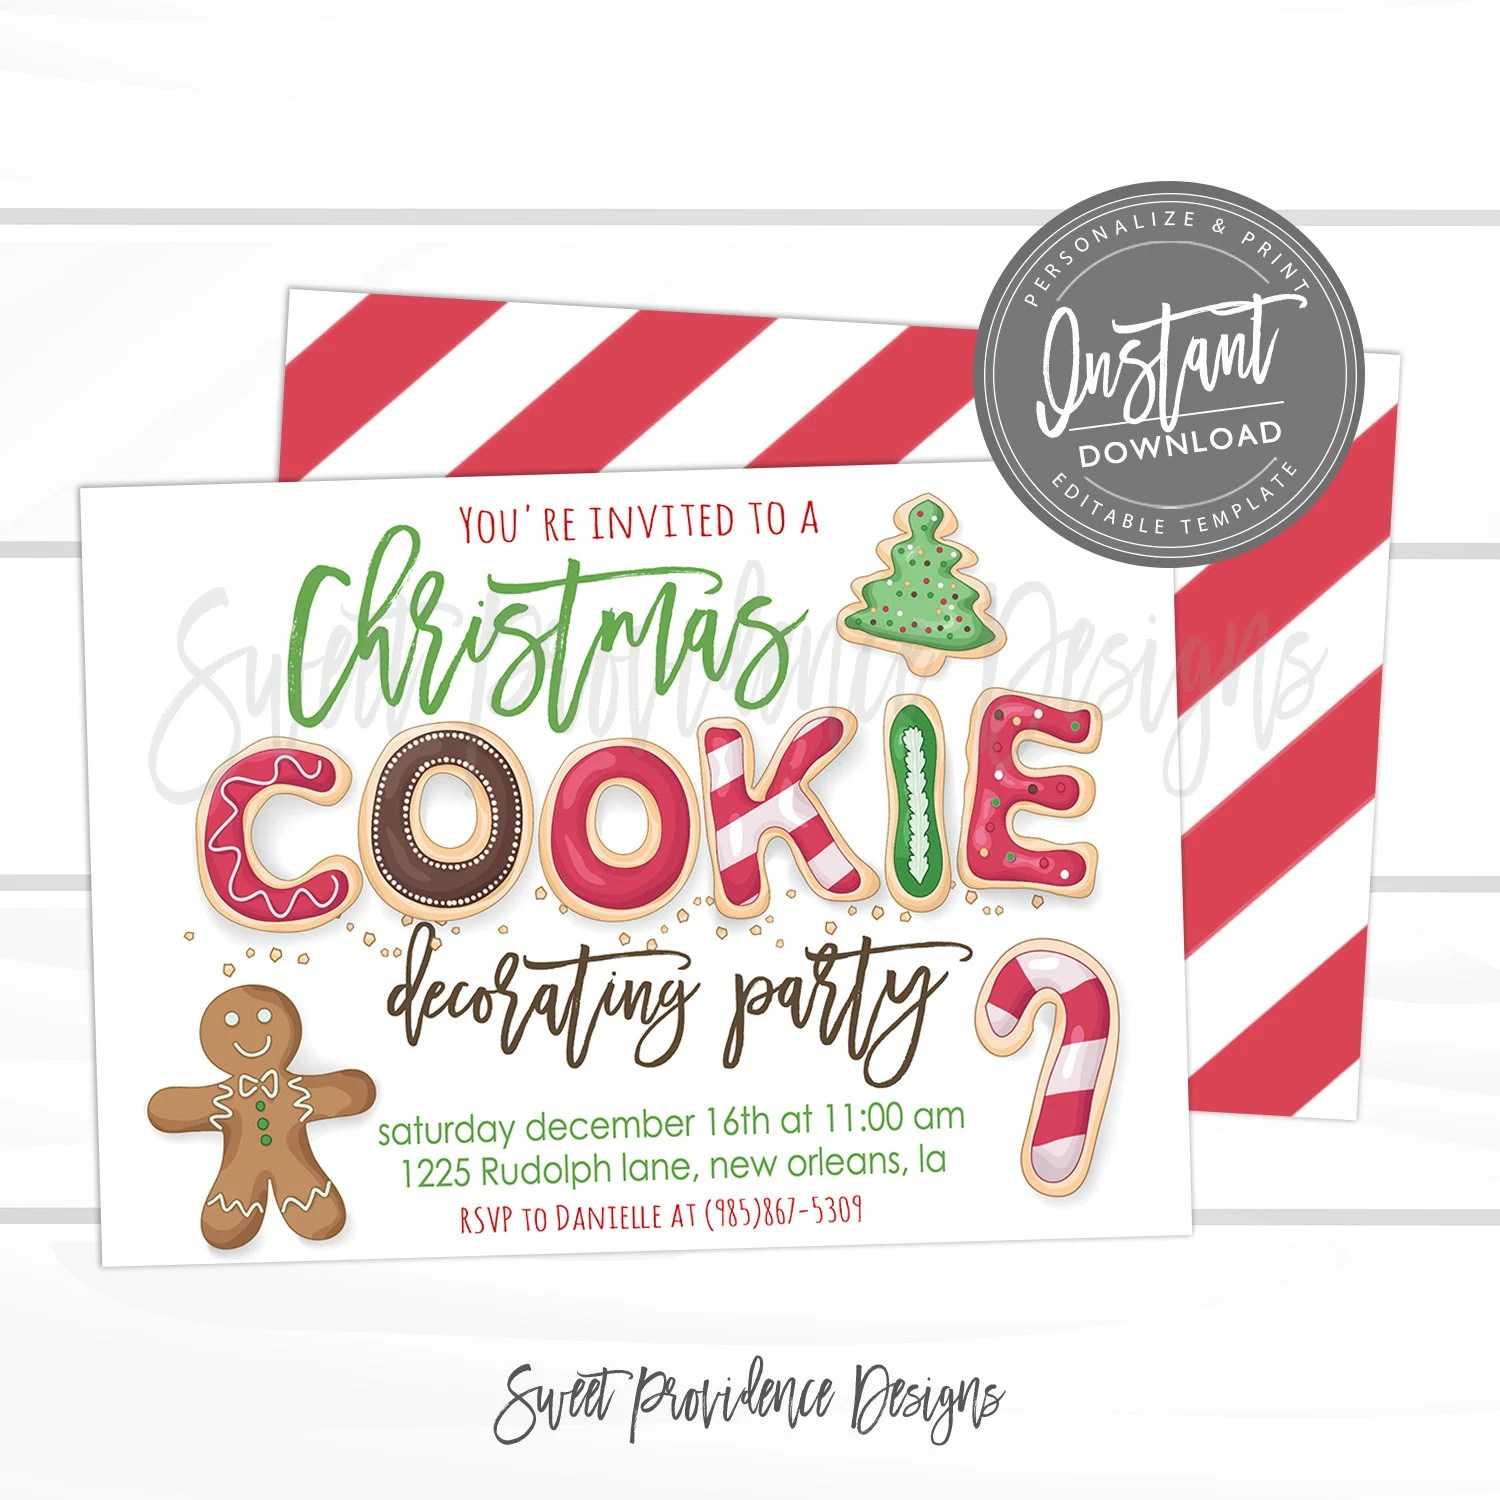 Christmas Cookie Decorating Party, Editable Christmas Party template